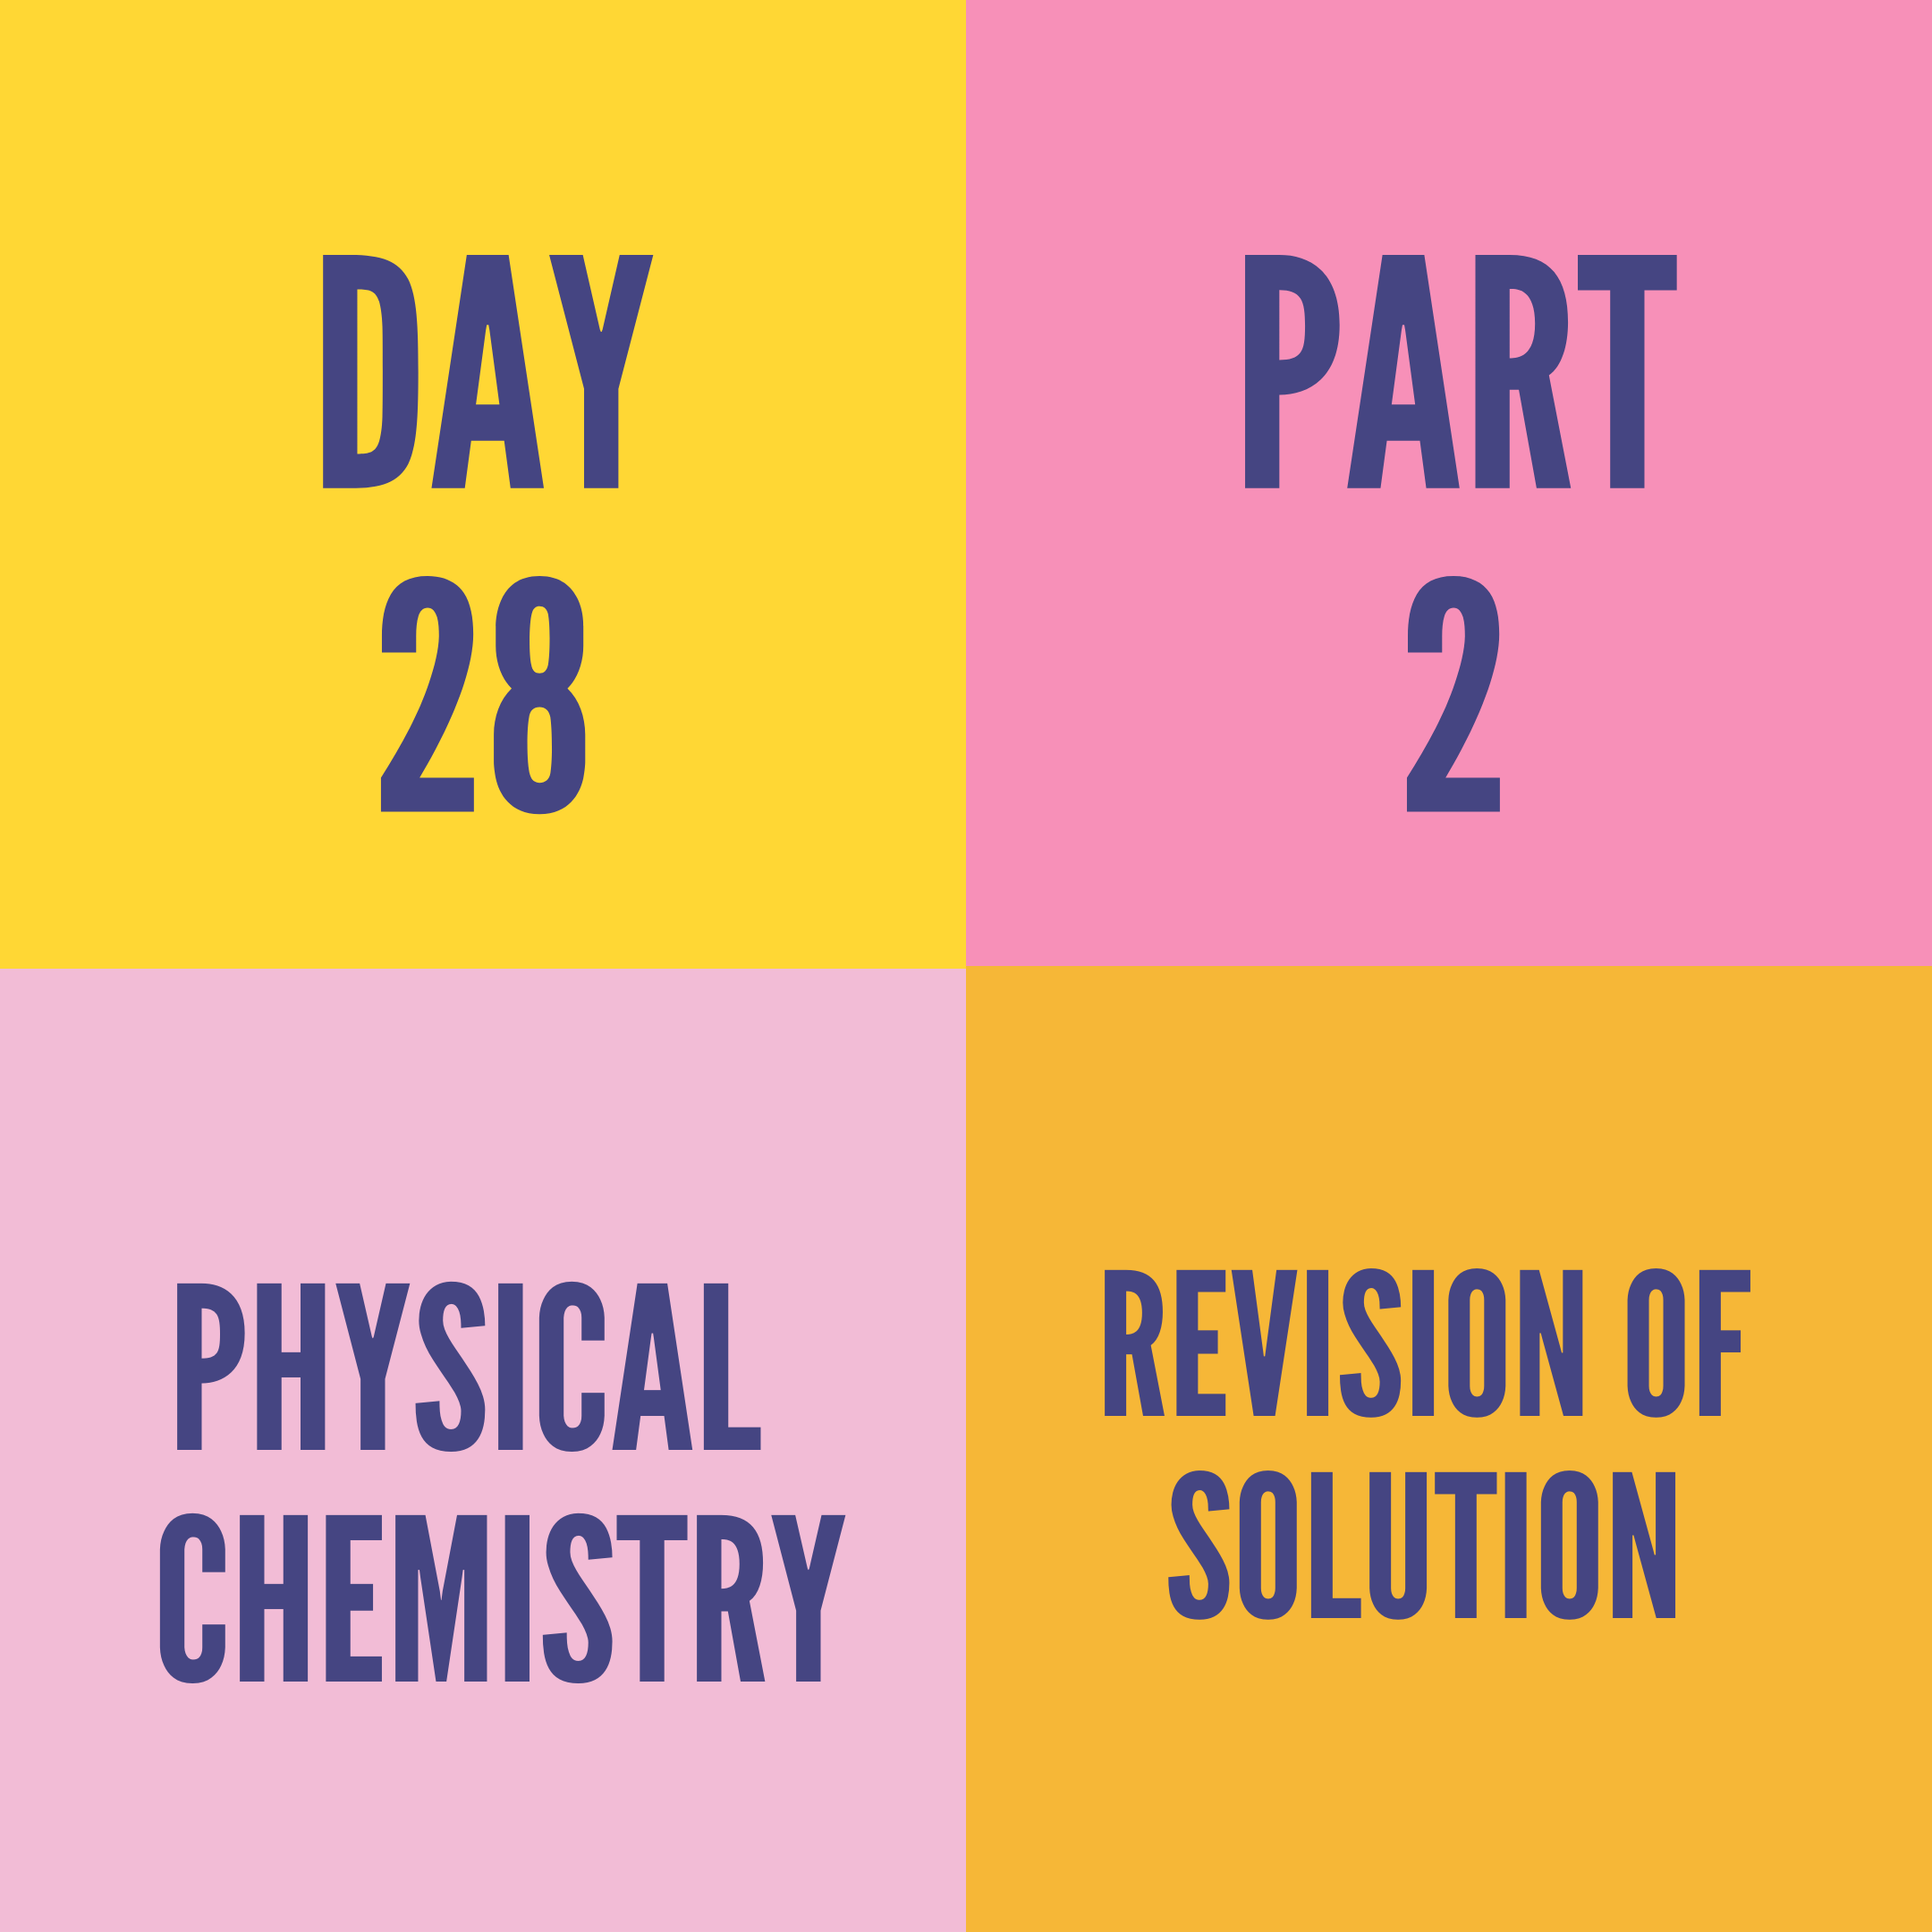 DAY-28 PART-2 REVISION OF SOLUTION